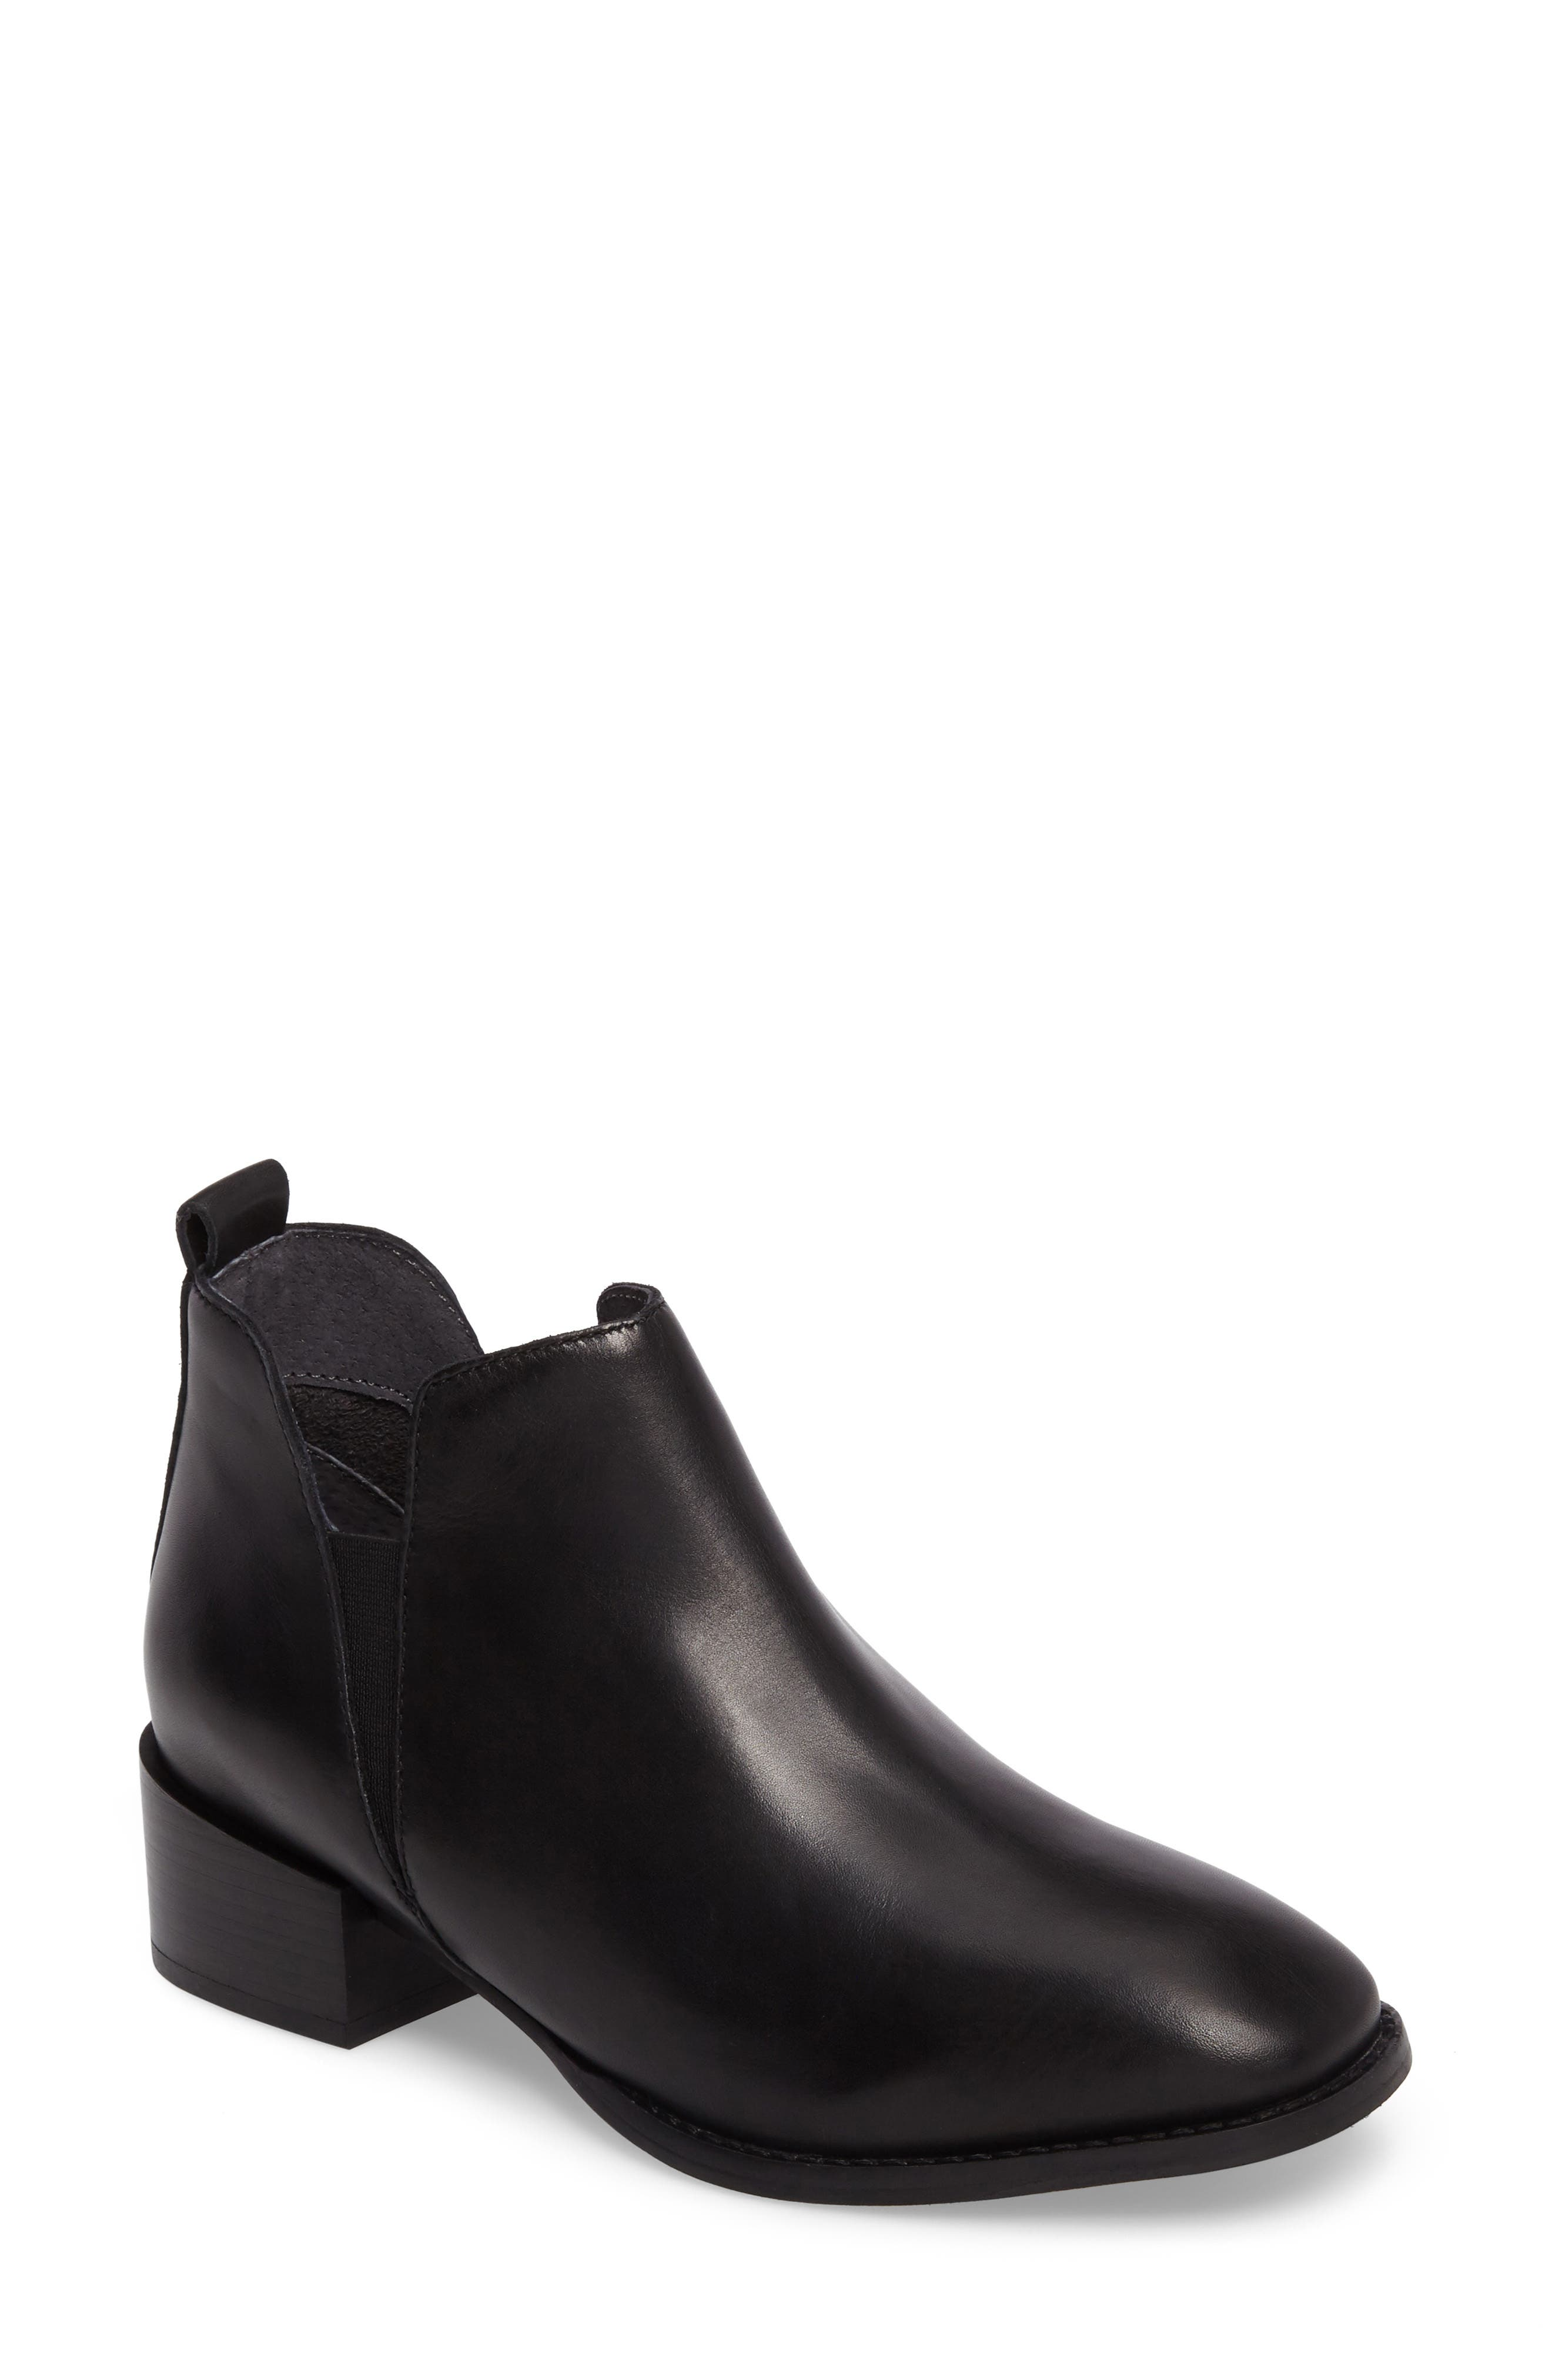 Offstage Boot,                             Main thumbnail 1, color,                             BLACK LEATHER